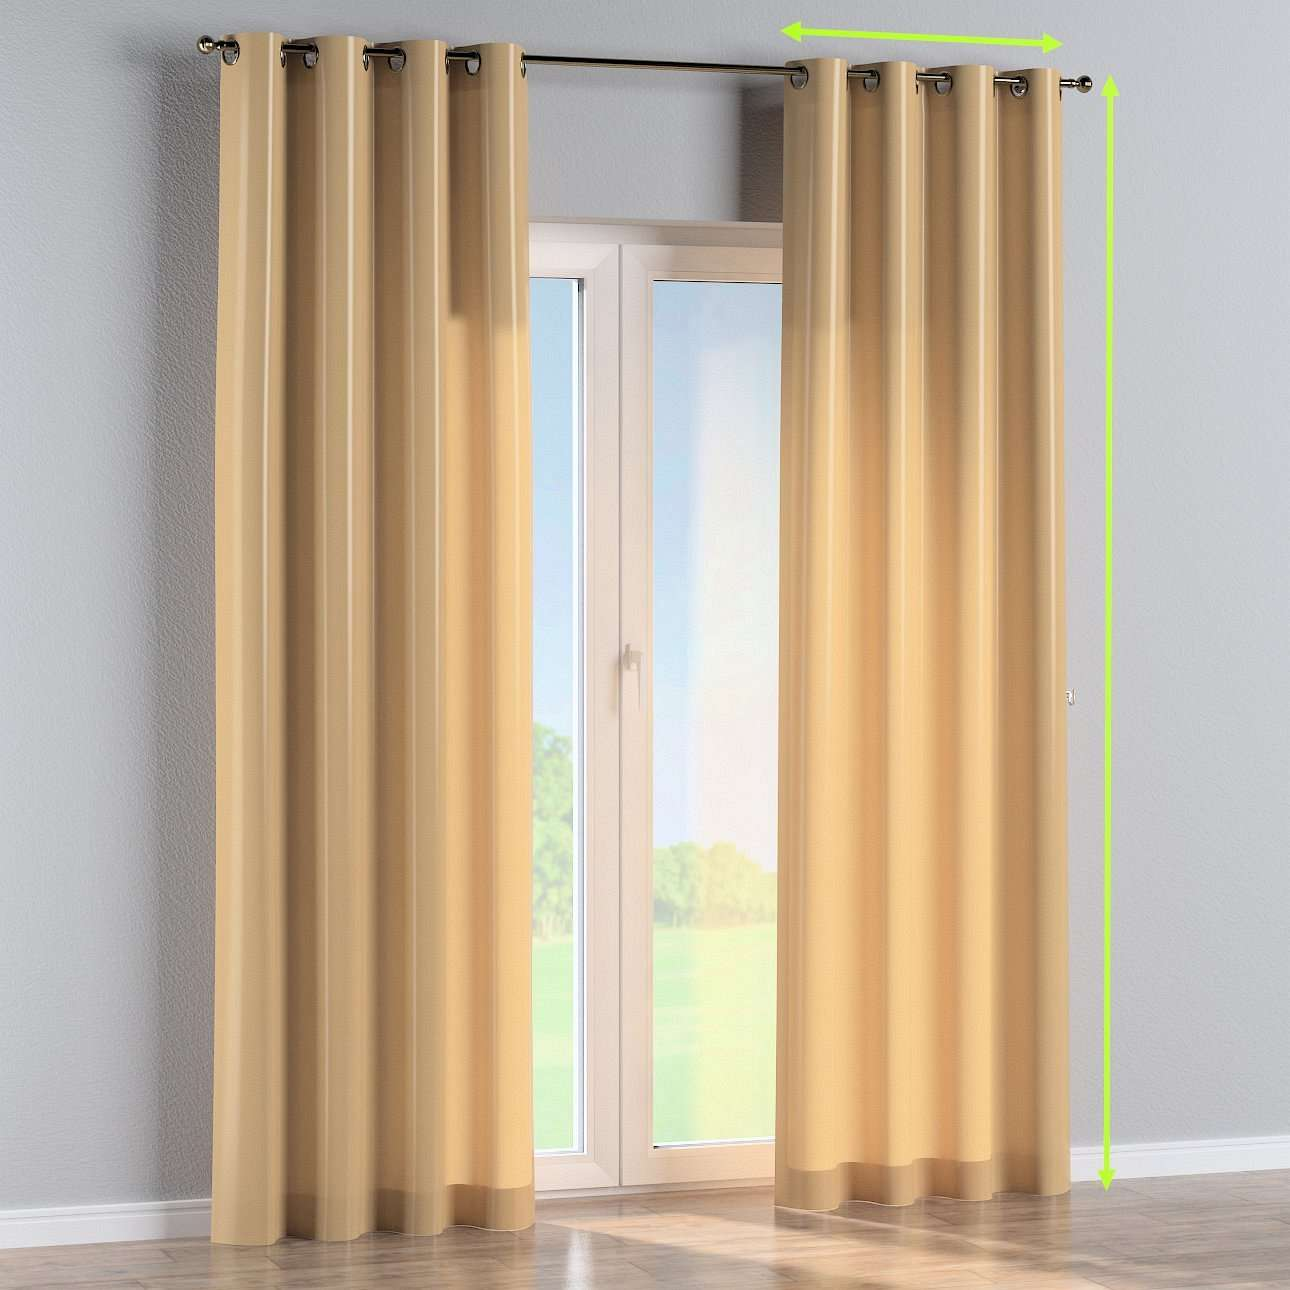 Eyelet lined curtains in collection Damasco, fabric: 141-75